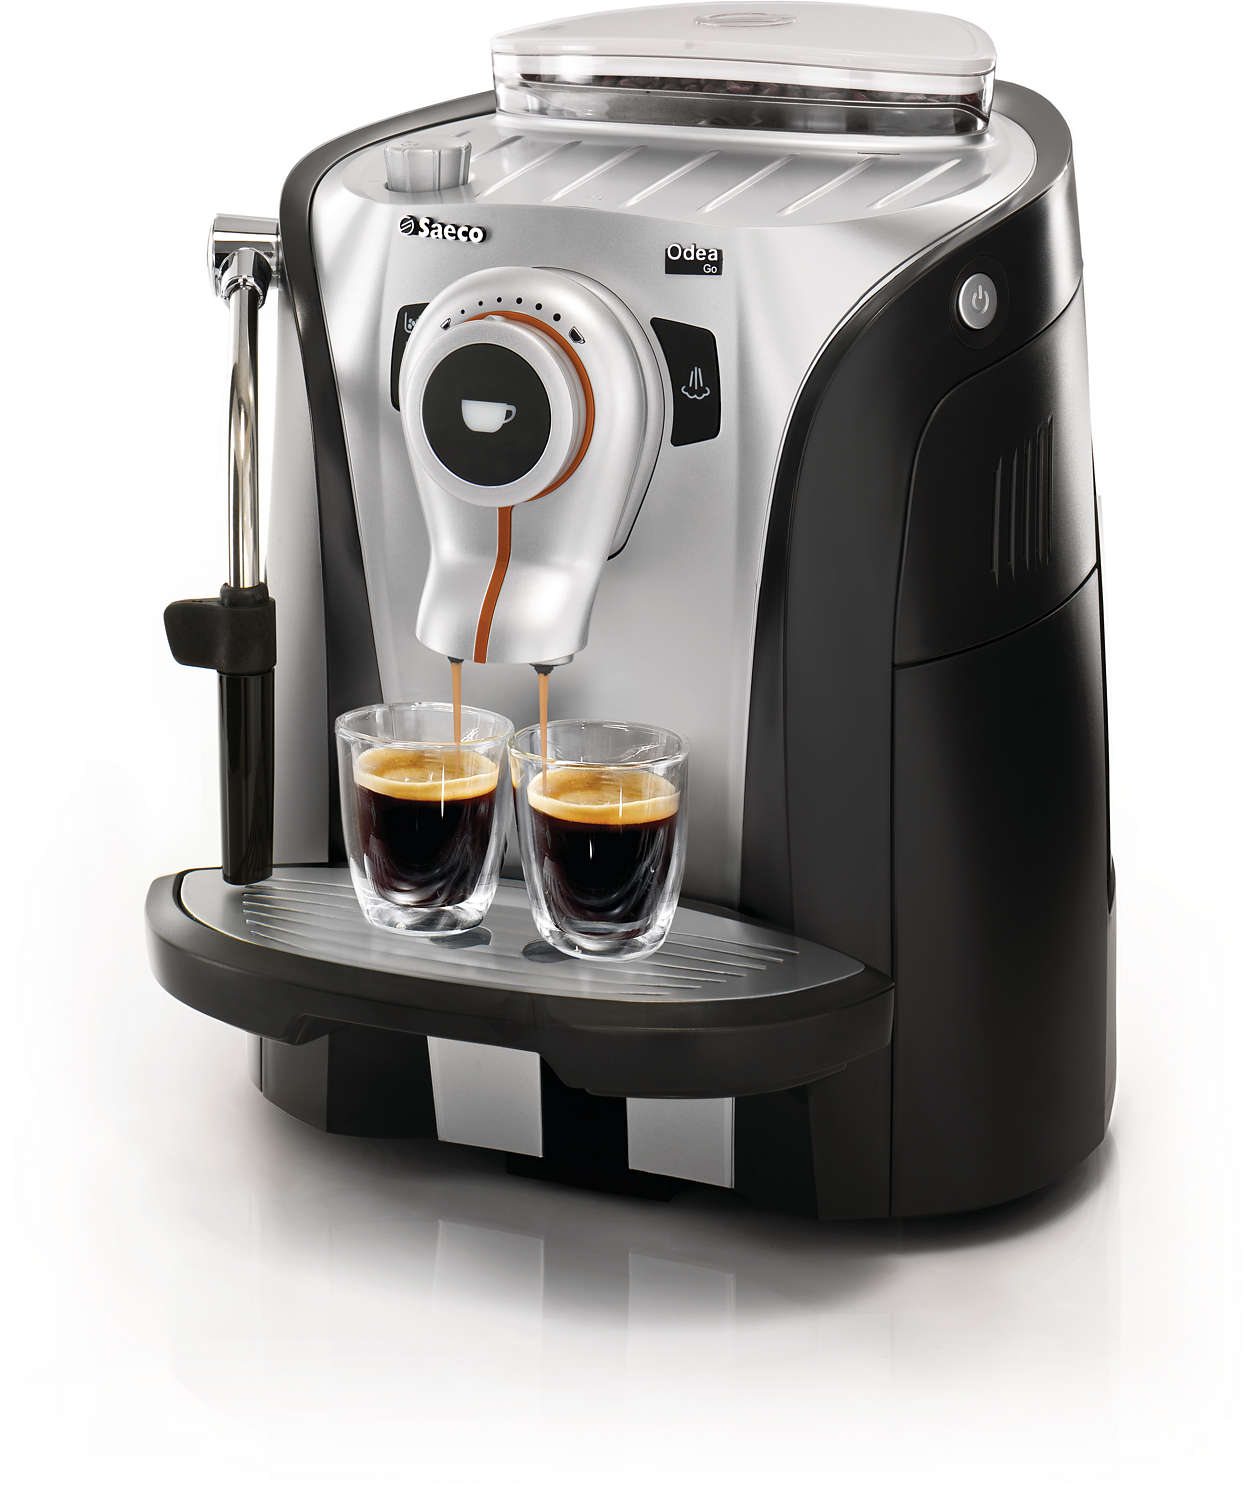 odea super automatic espresso machine ri9752 48 saeco. Black Bedroom Furniture Sets. Home Design Ideas